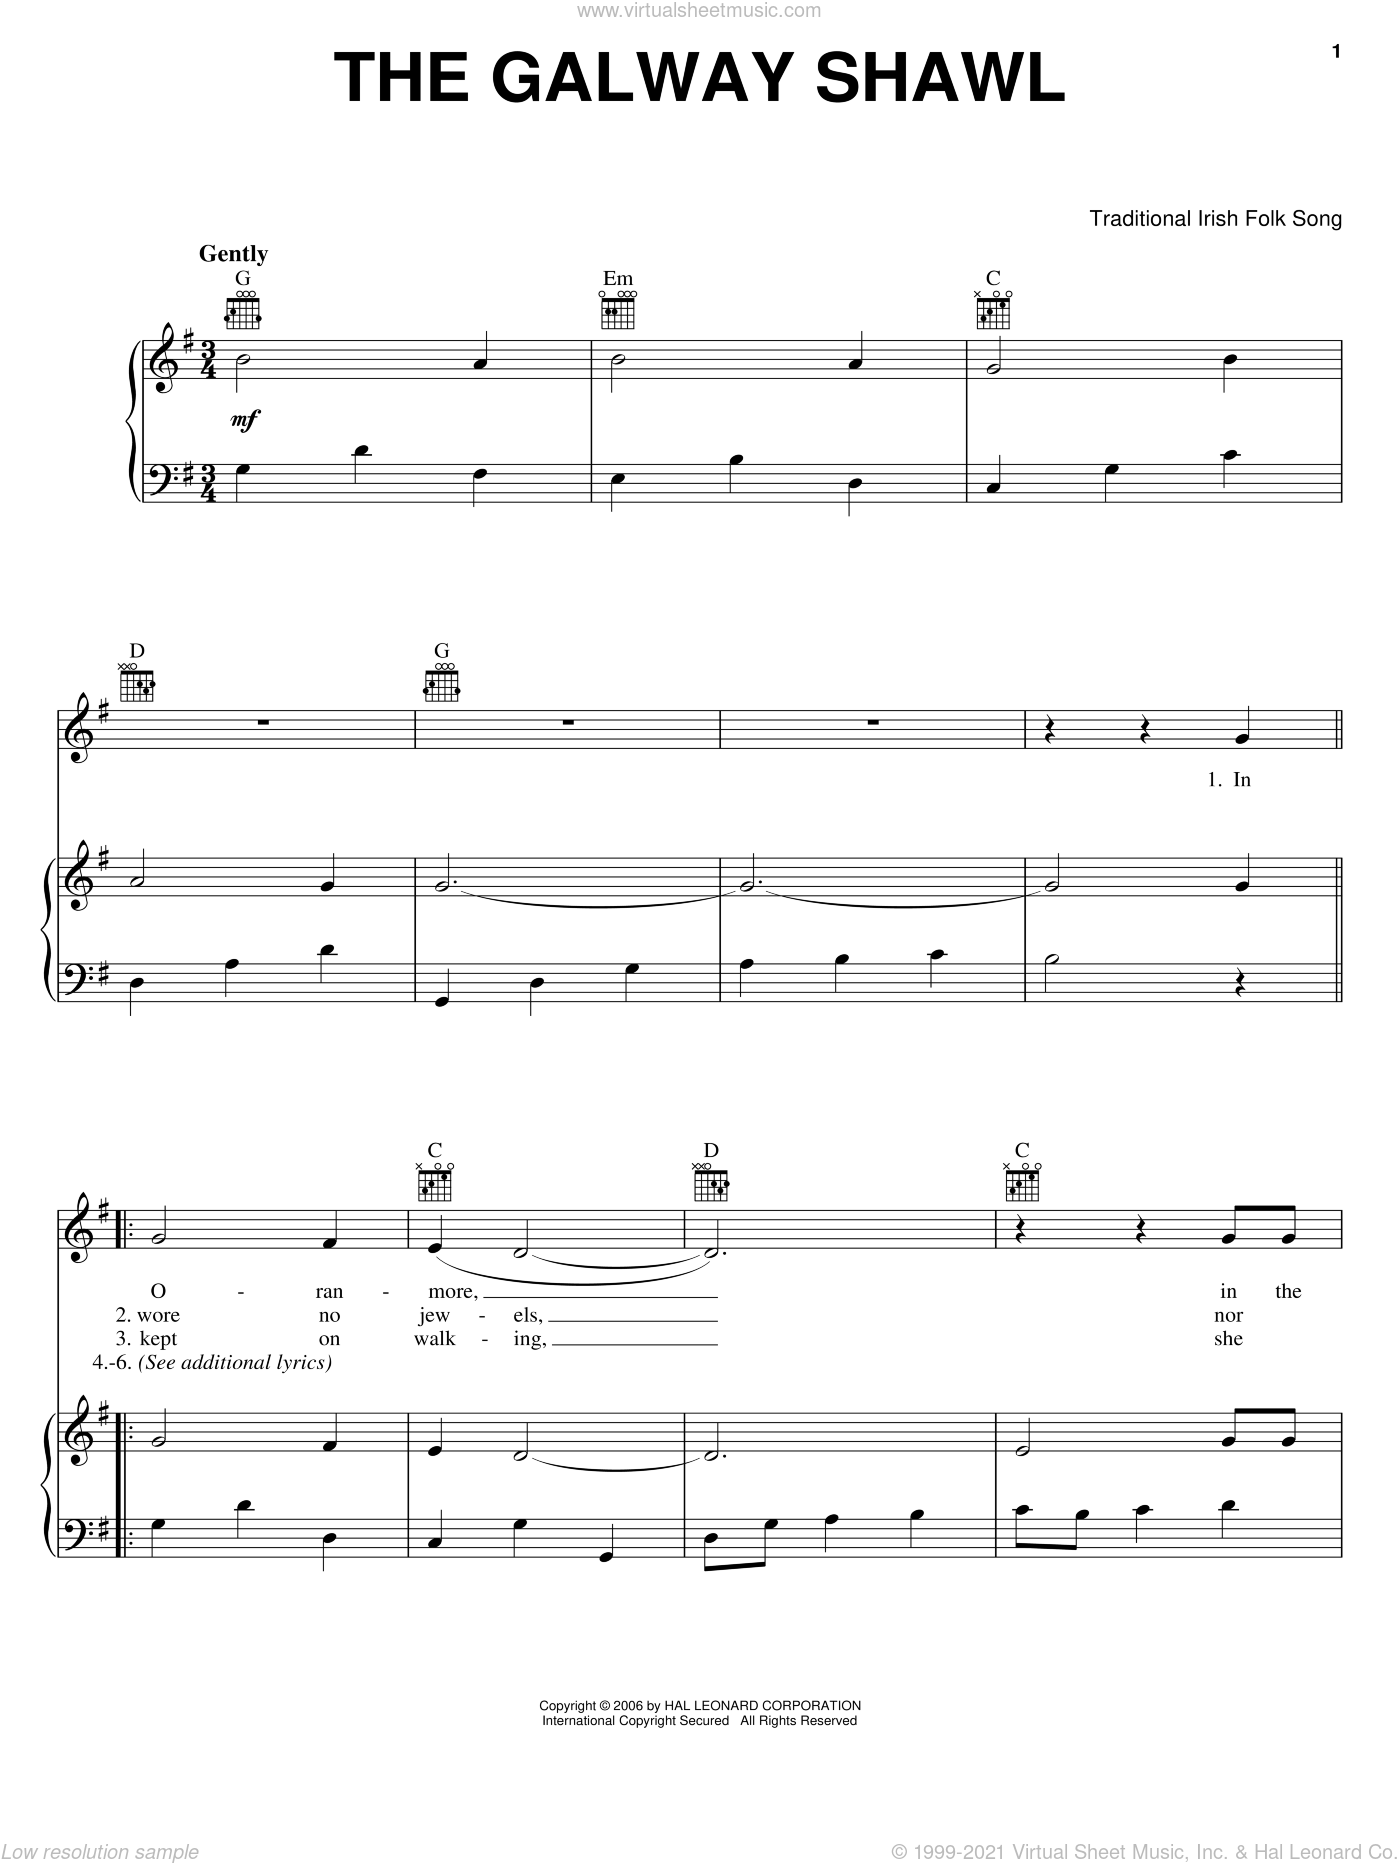 The Galway Shawl sheet music for voice, piano or guitar, intermediate